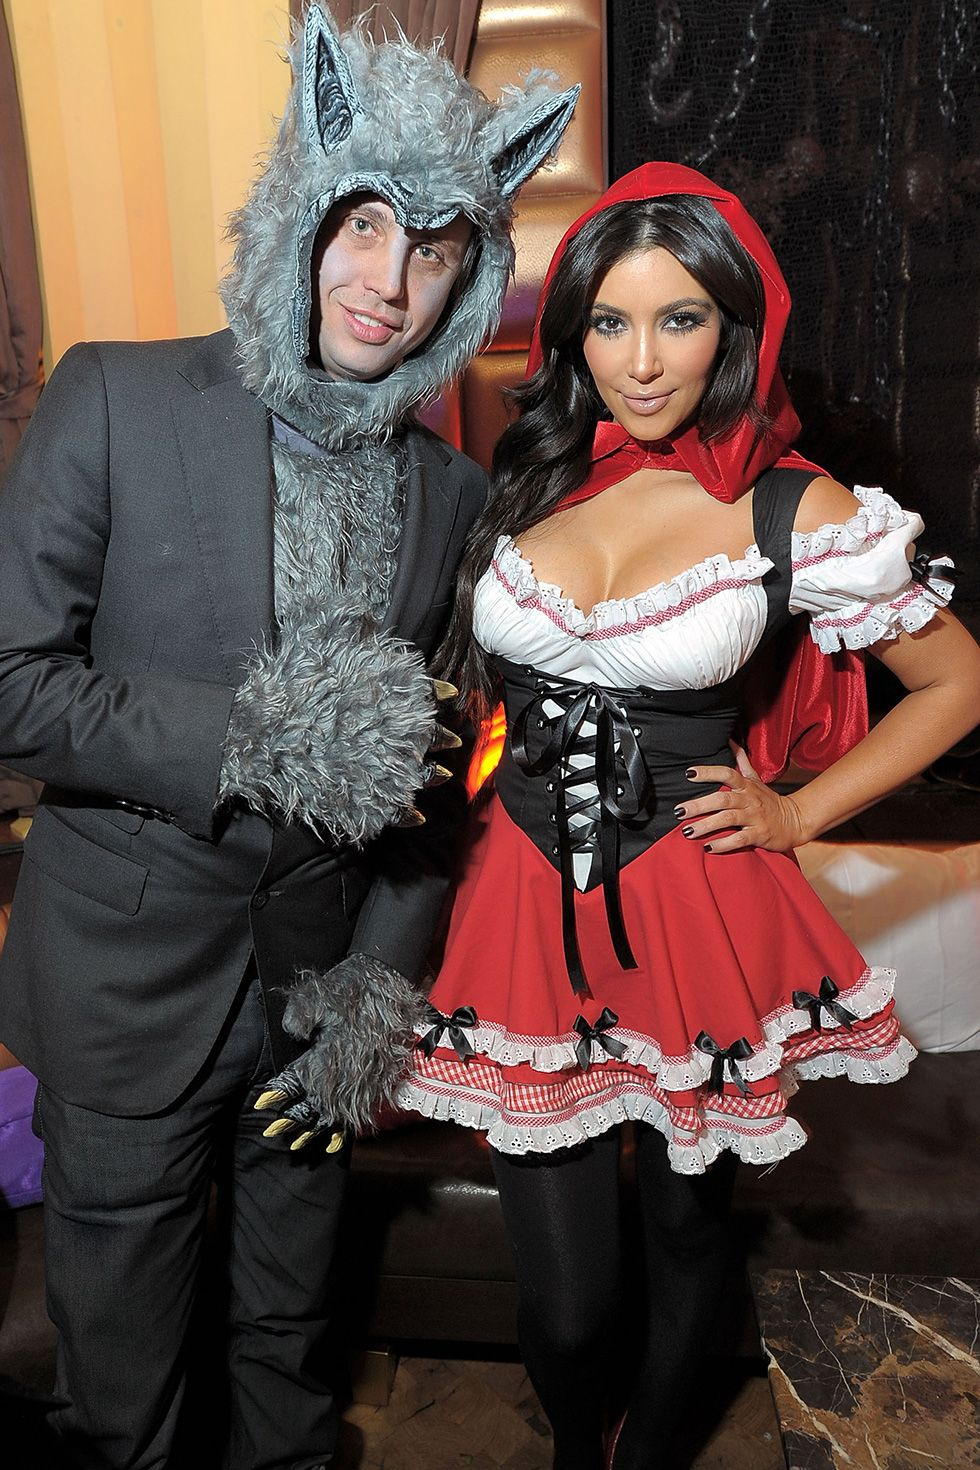 30 celebrity couples costumes you should totally steal for halloween this year